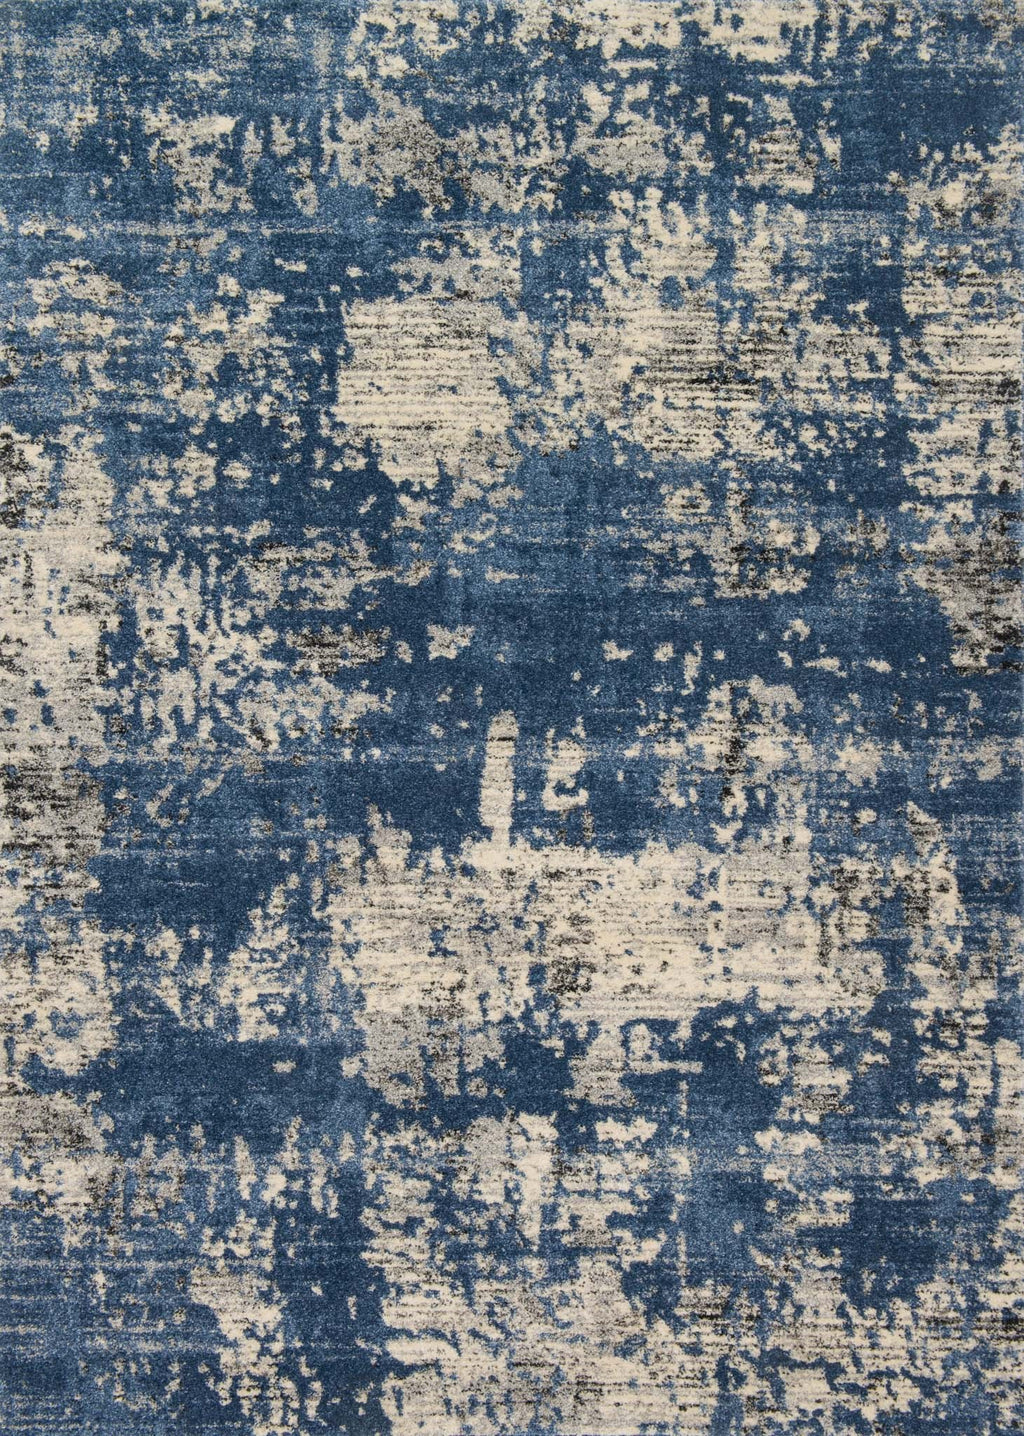 EMORY Collection Rug  in  BLUE / GRANITE Blue Runner Power-Loomed Polypropylene